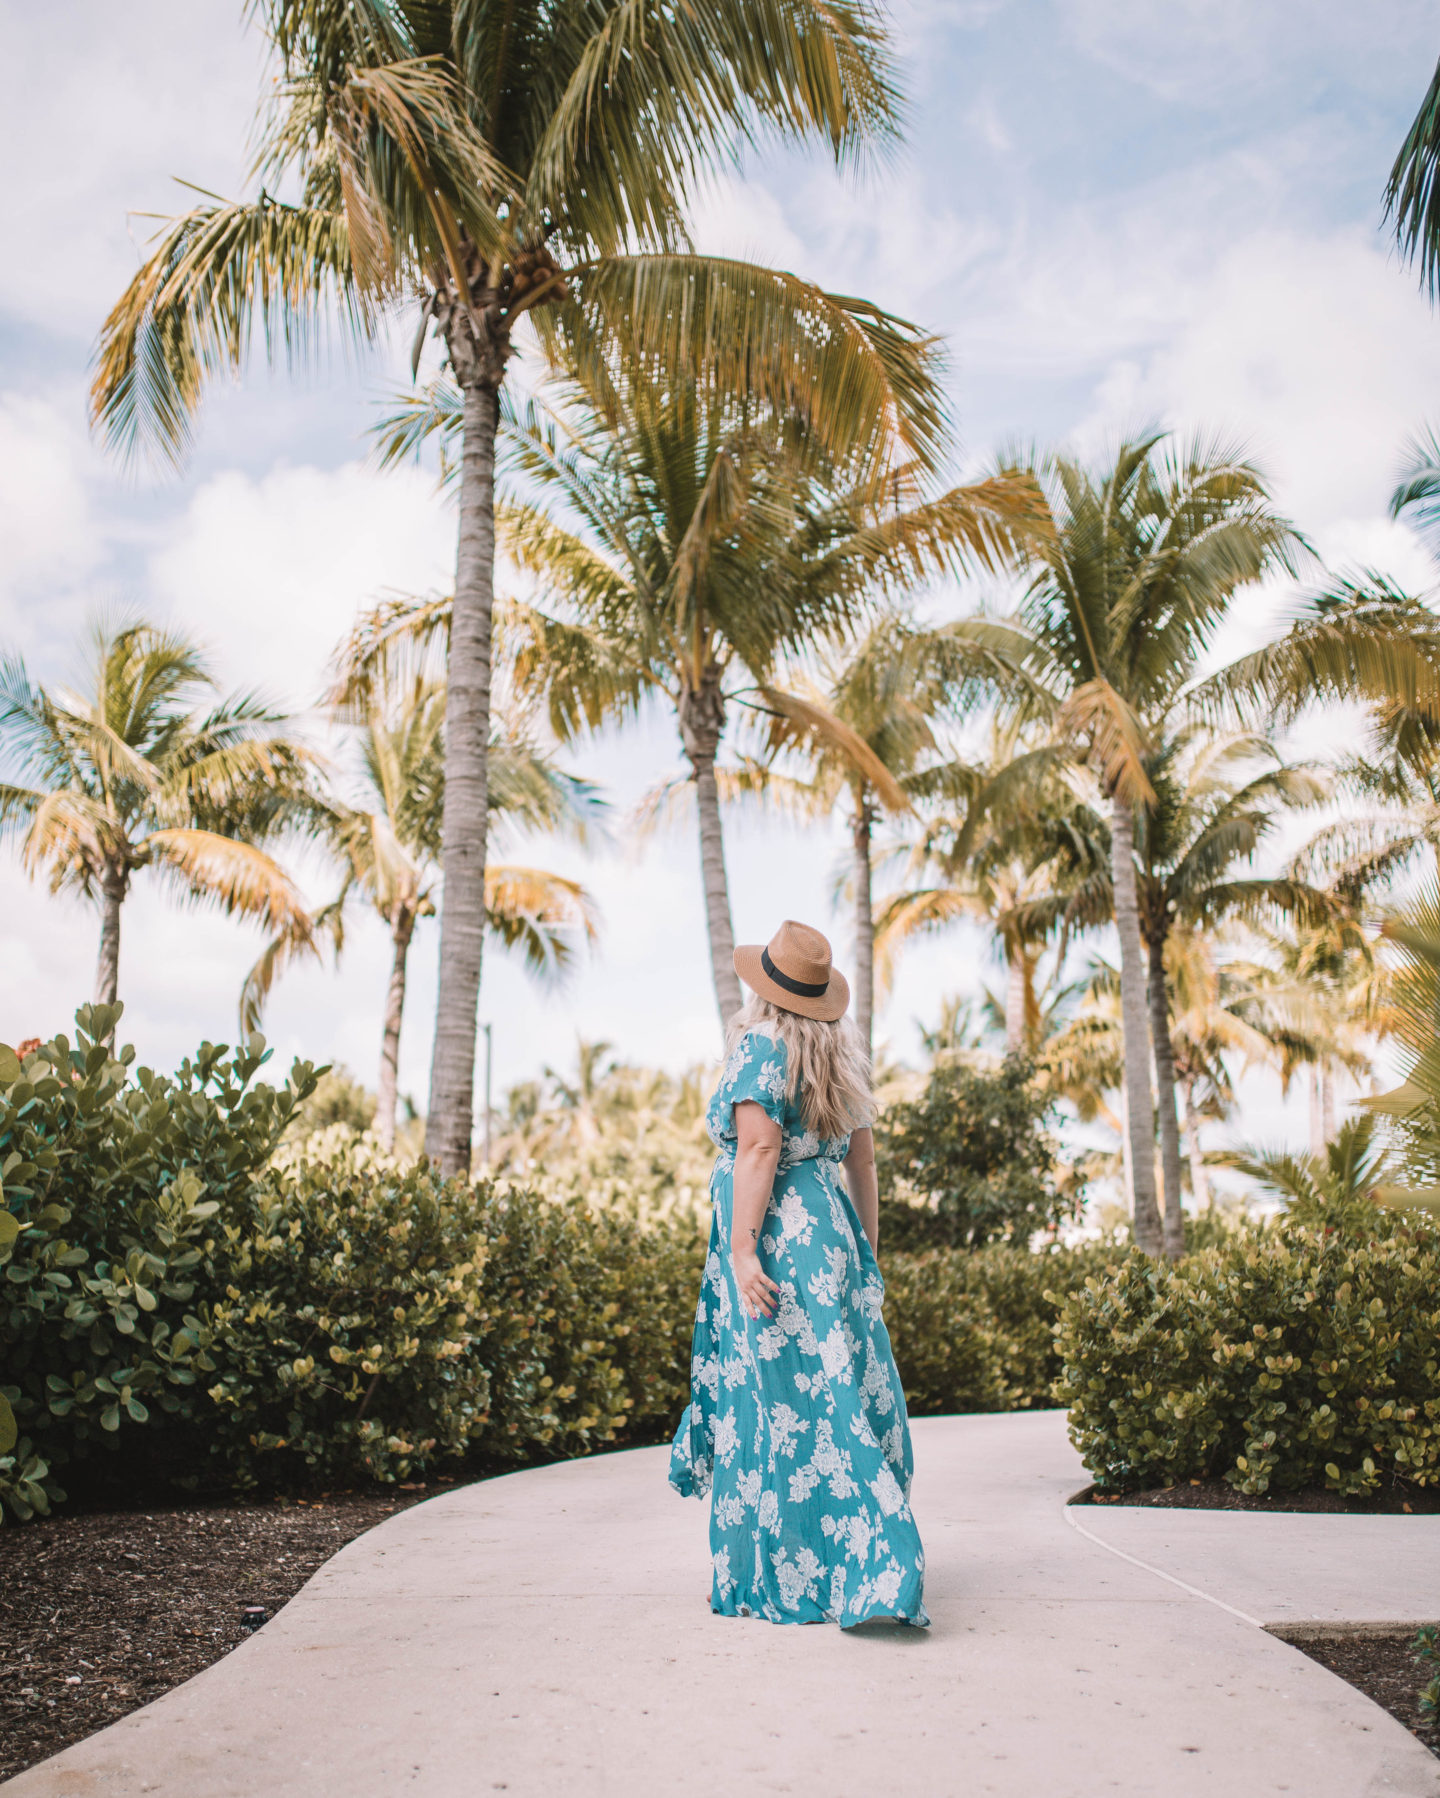 woman wearing blue flowy dress, standing on sidewalk, looking up at palm trees